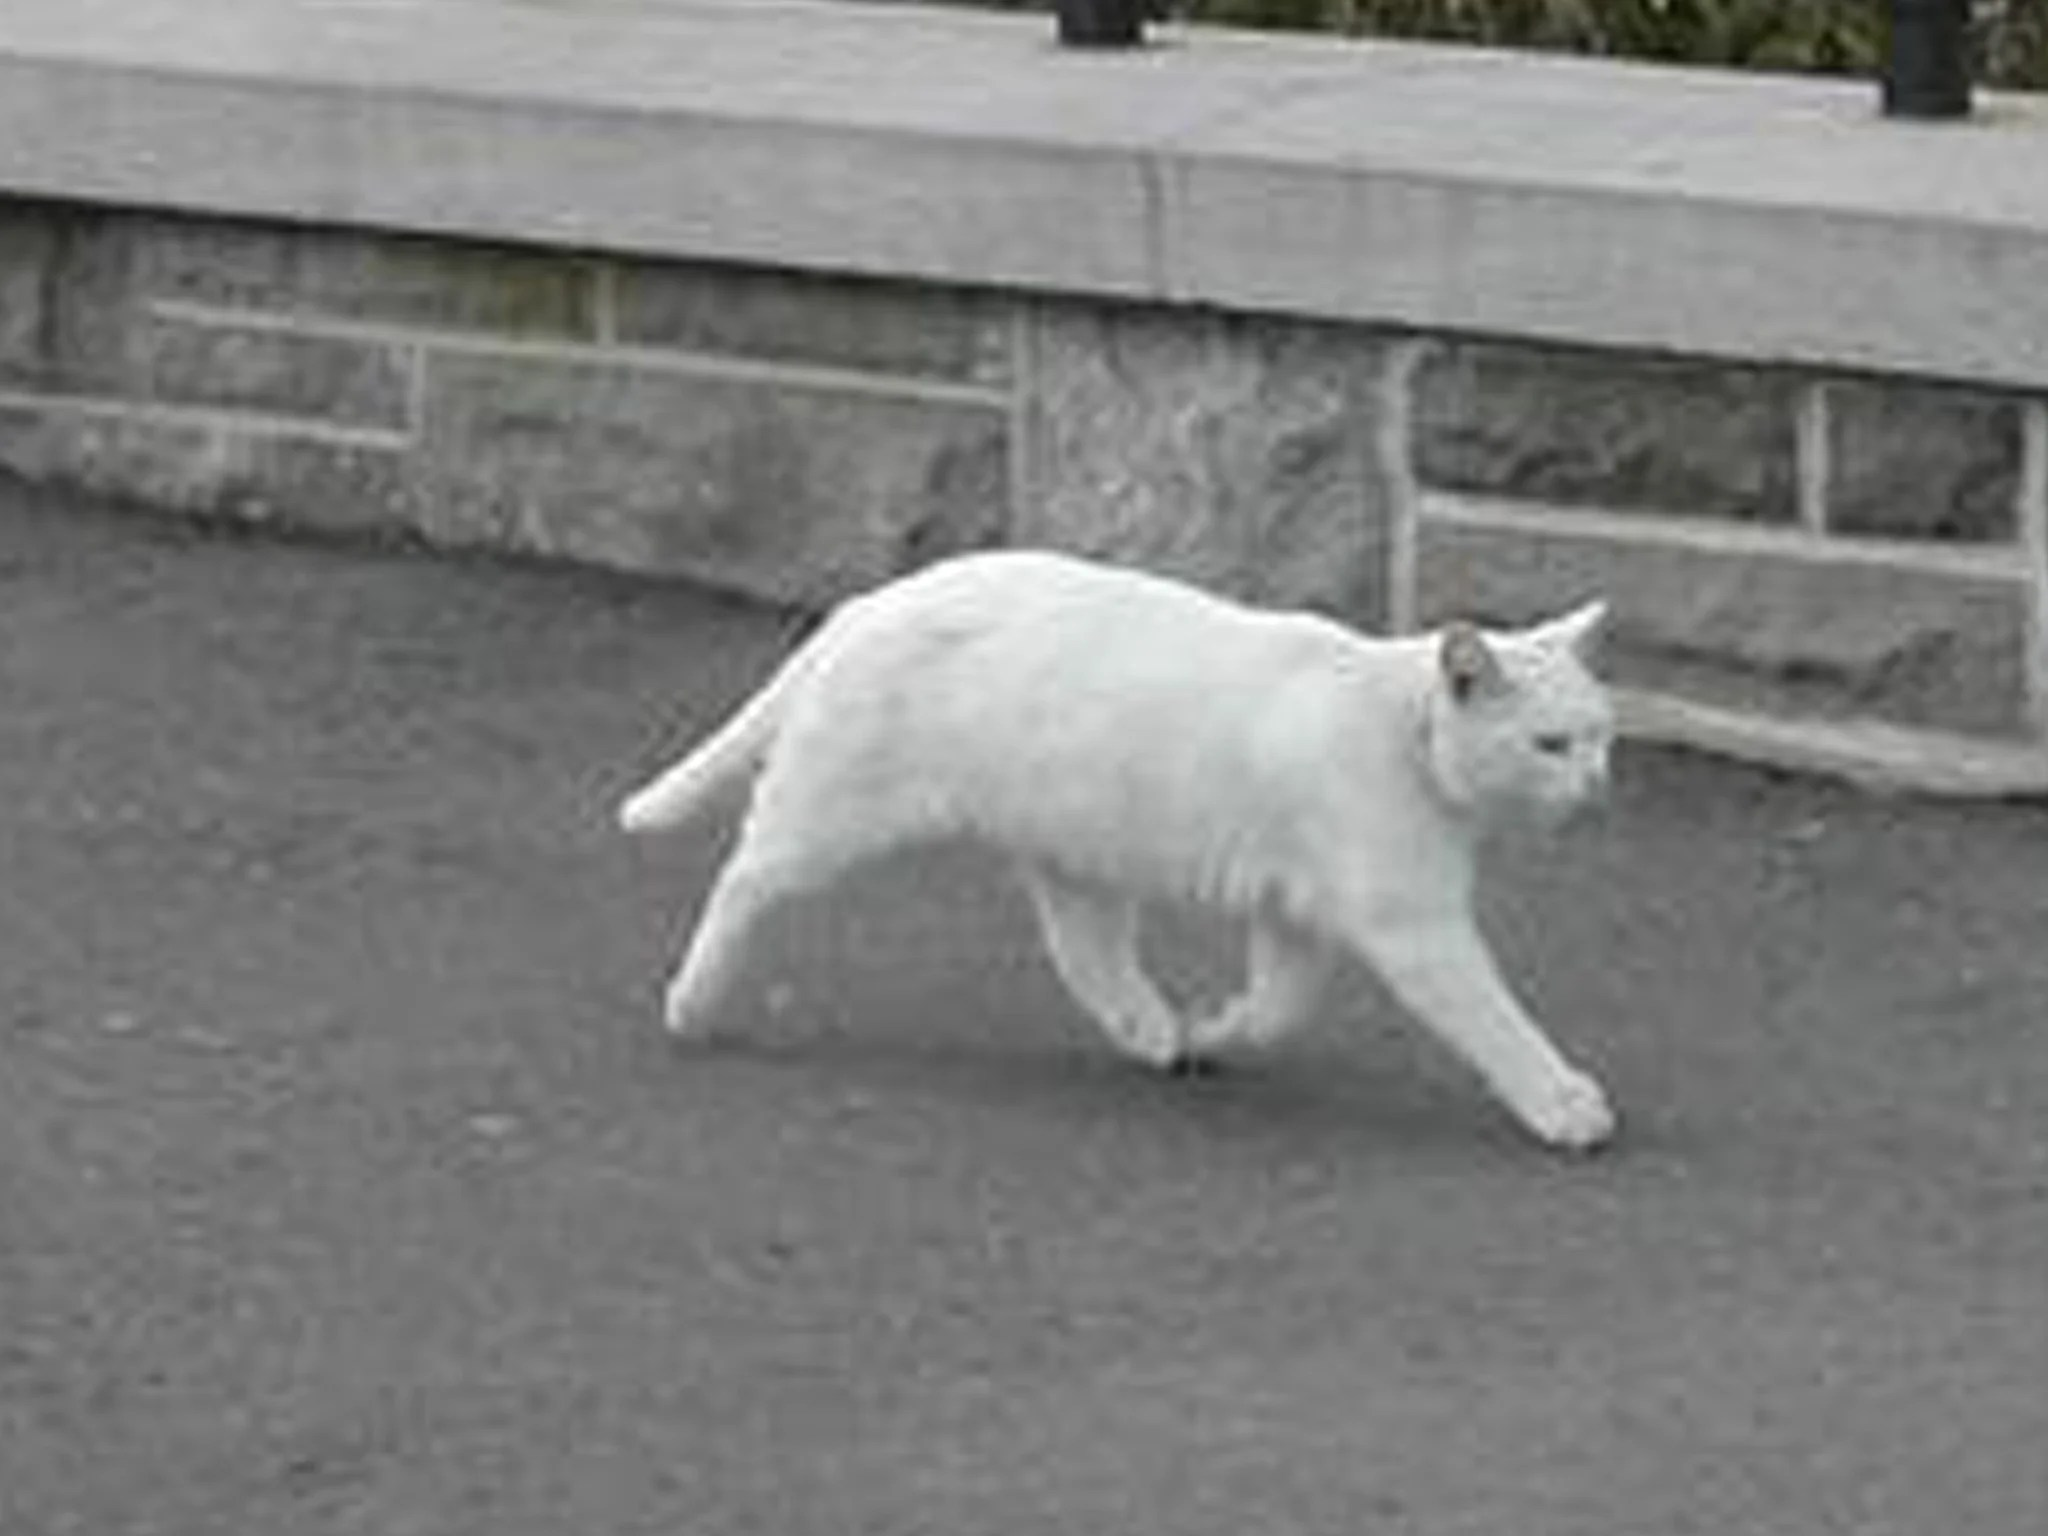 Cat 2048 Revealed The Half Cat Not Created By Google Street View The